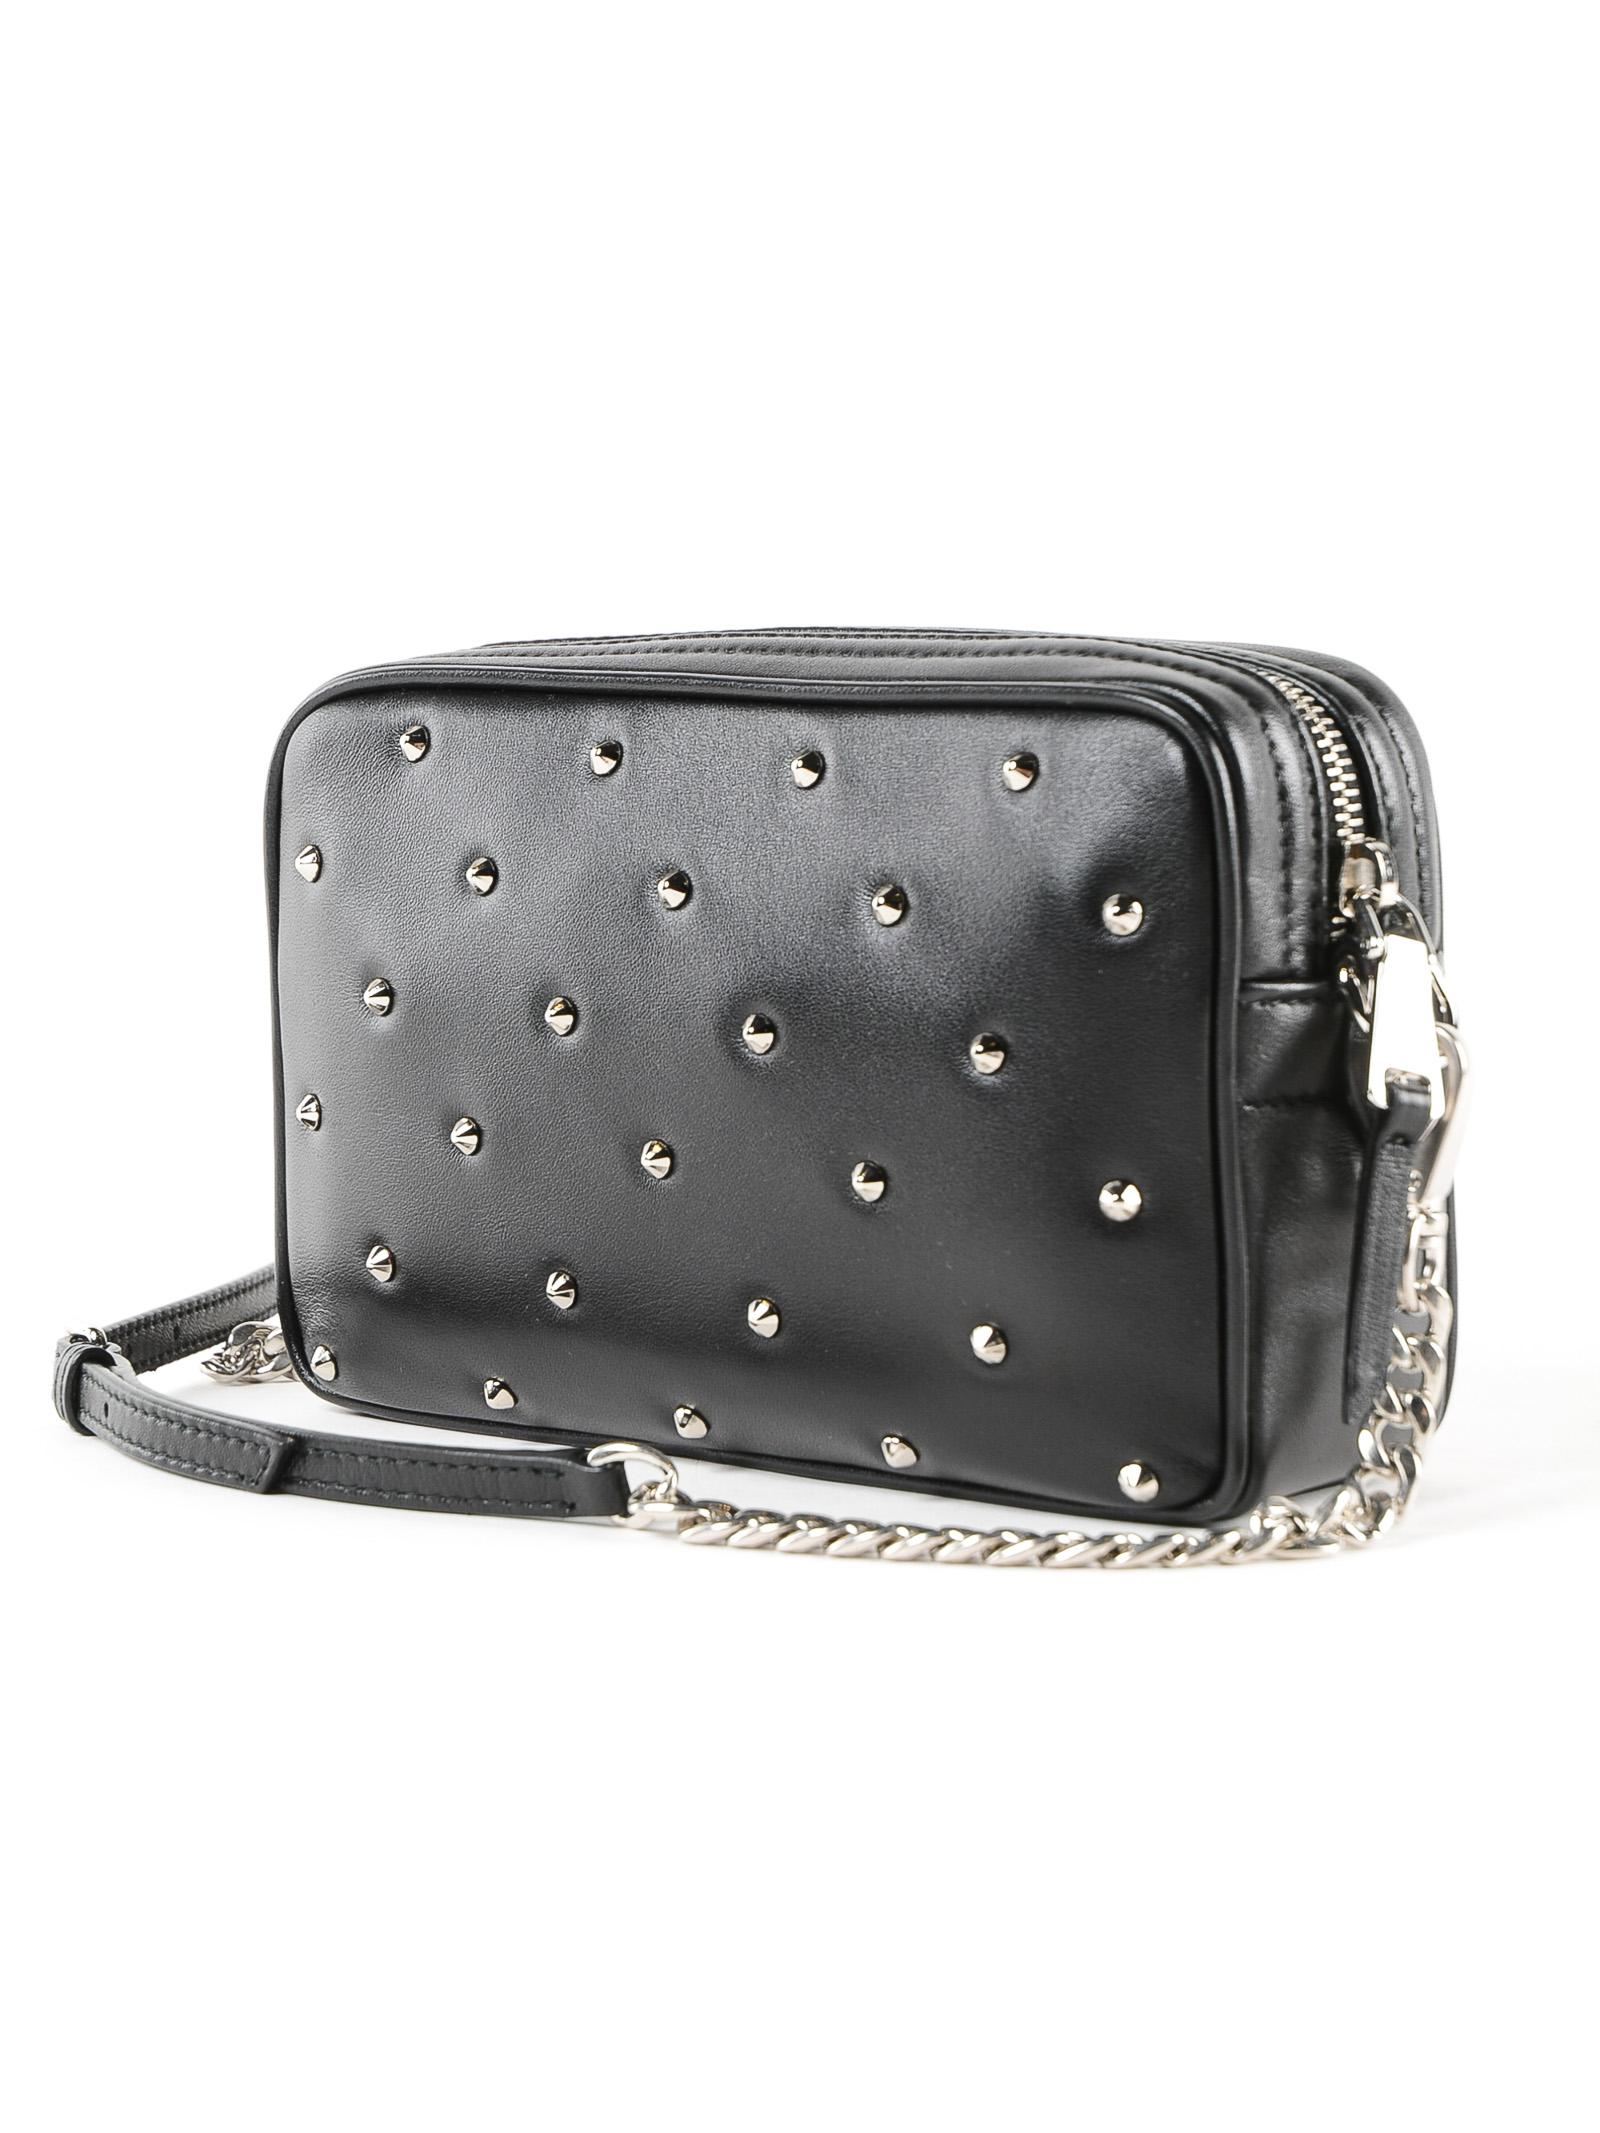 Miu Miu - Black Lambskin Diamante` Crossbody Bag - Lyst. View fullscreen 94213c8ae192b